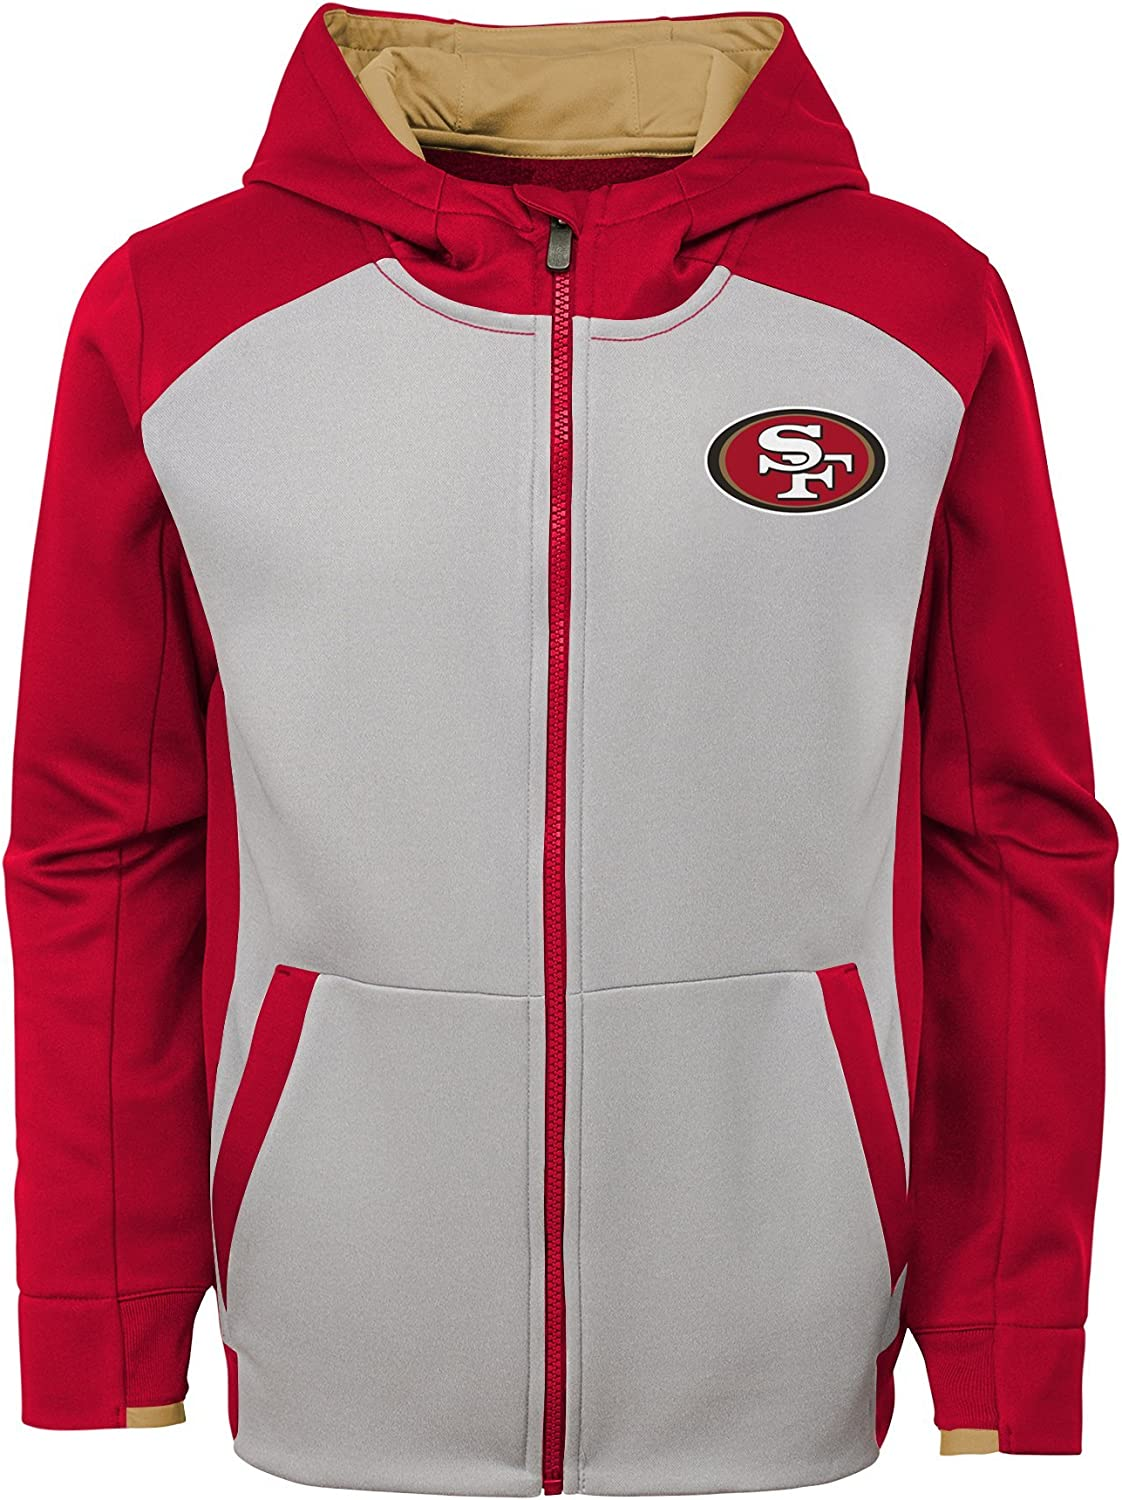 4-6 Team Color NFL San Francisco 49ers 4-7 Outerstuff Man In Motion Pullover Hoodie Kids Small